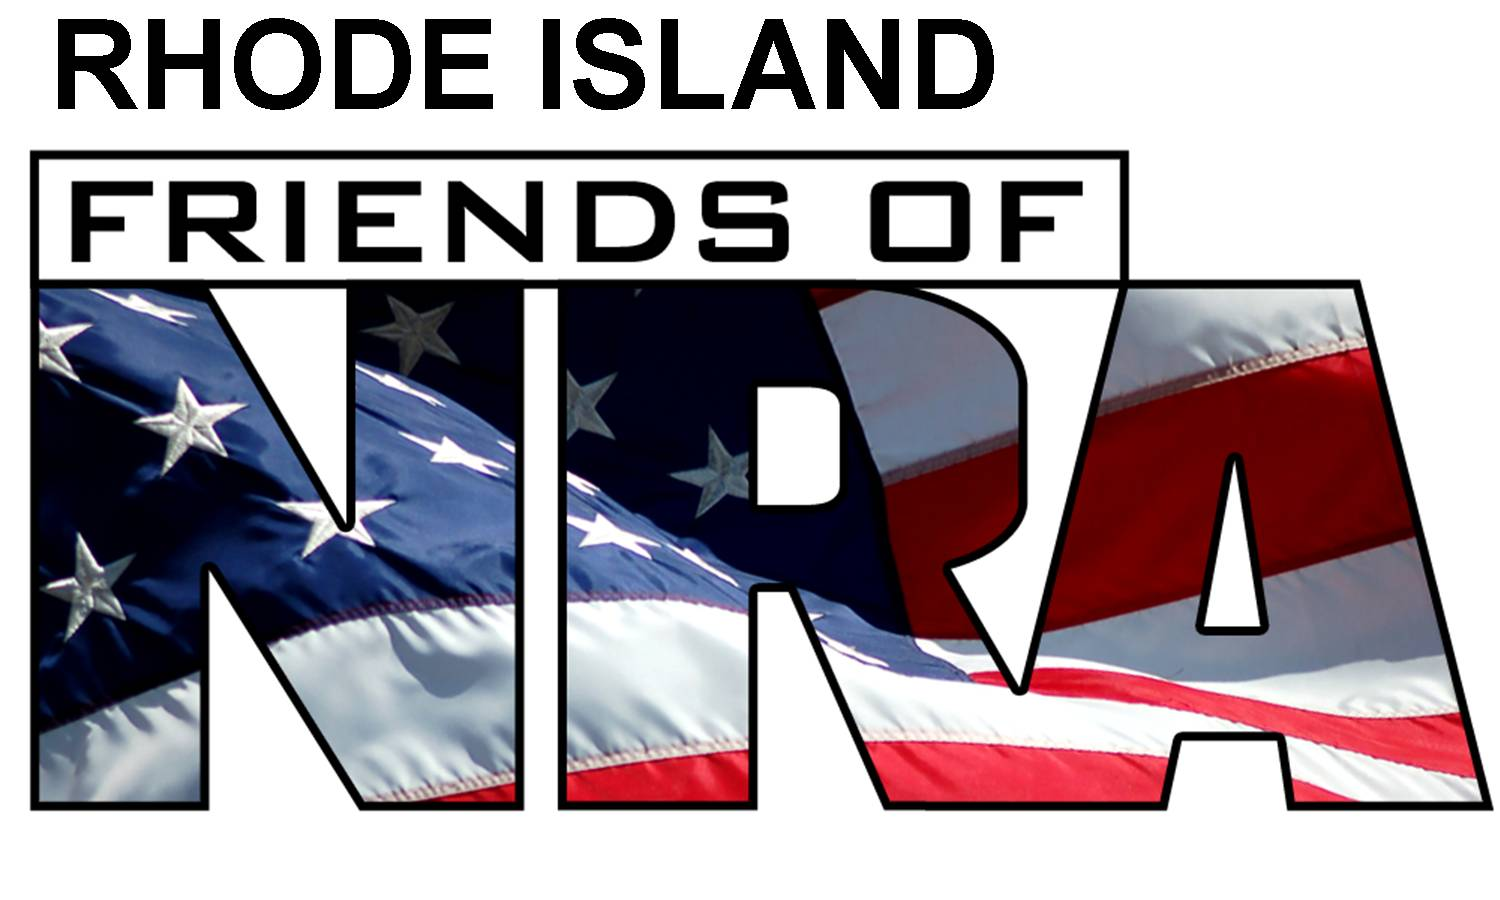 Rhode Island Friends of NRA Logo